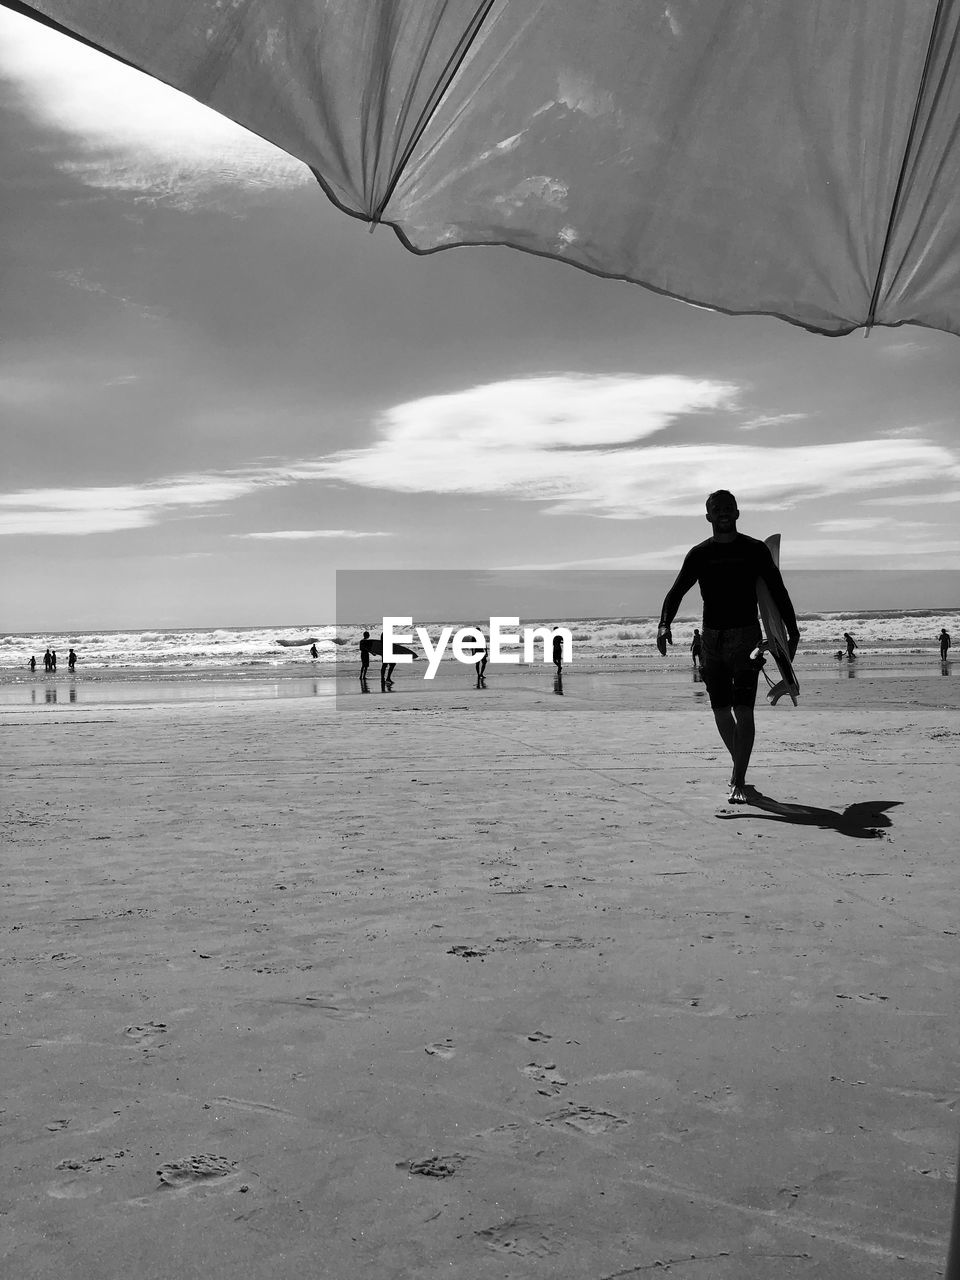 Man with surfboard walking at beach against sky